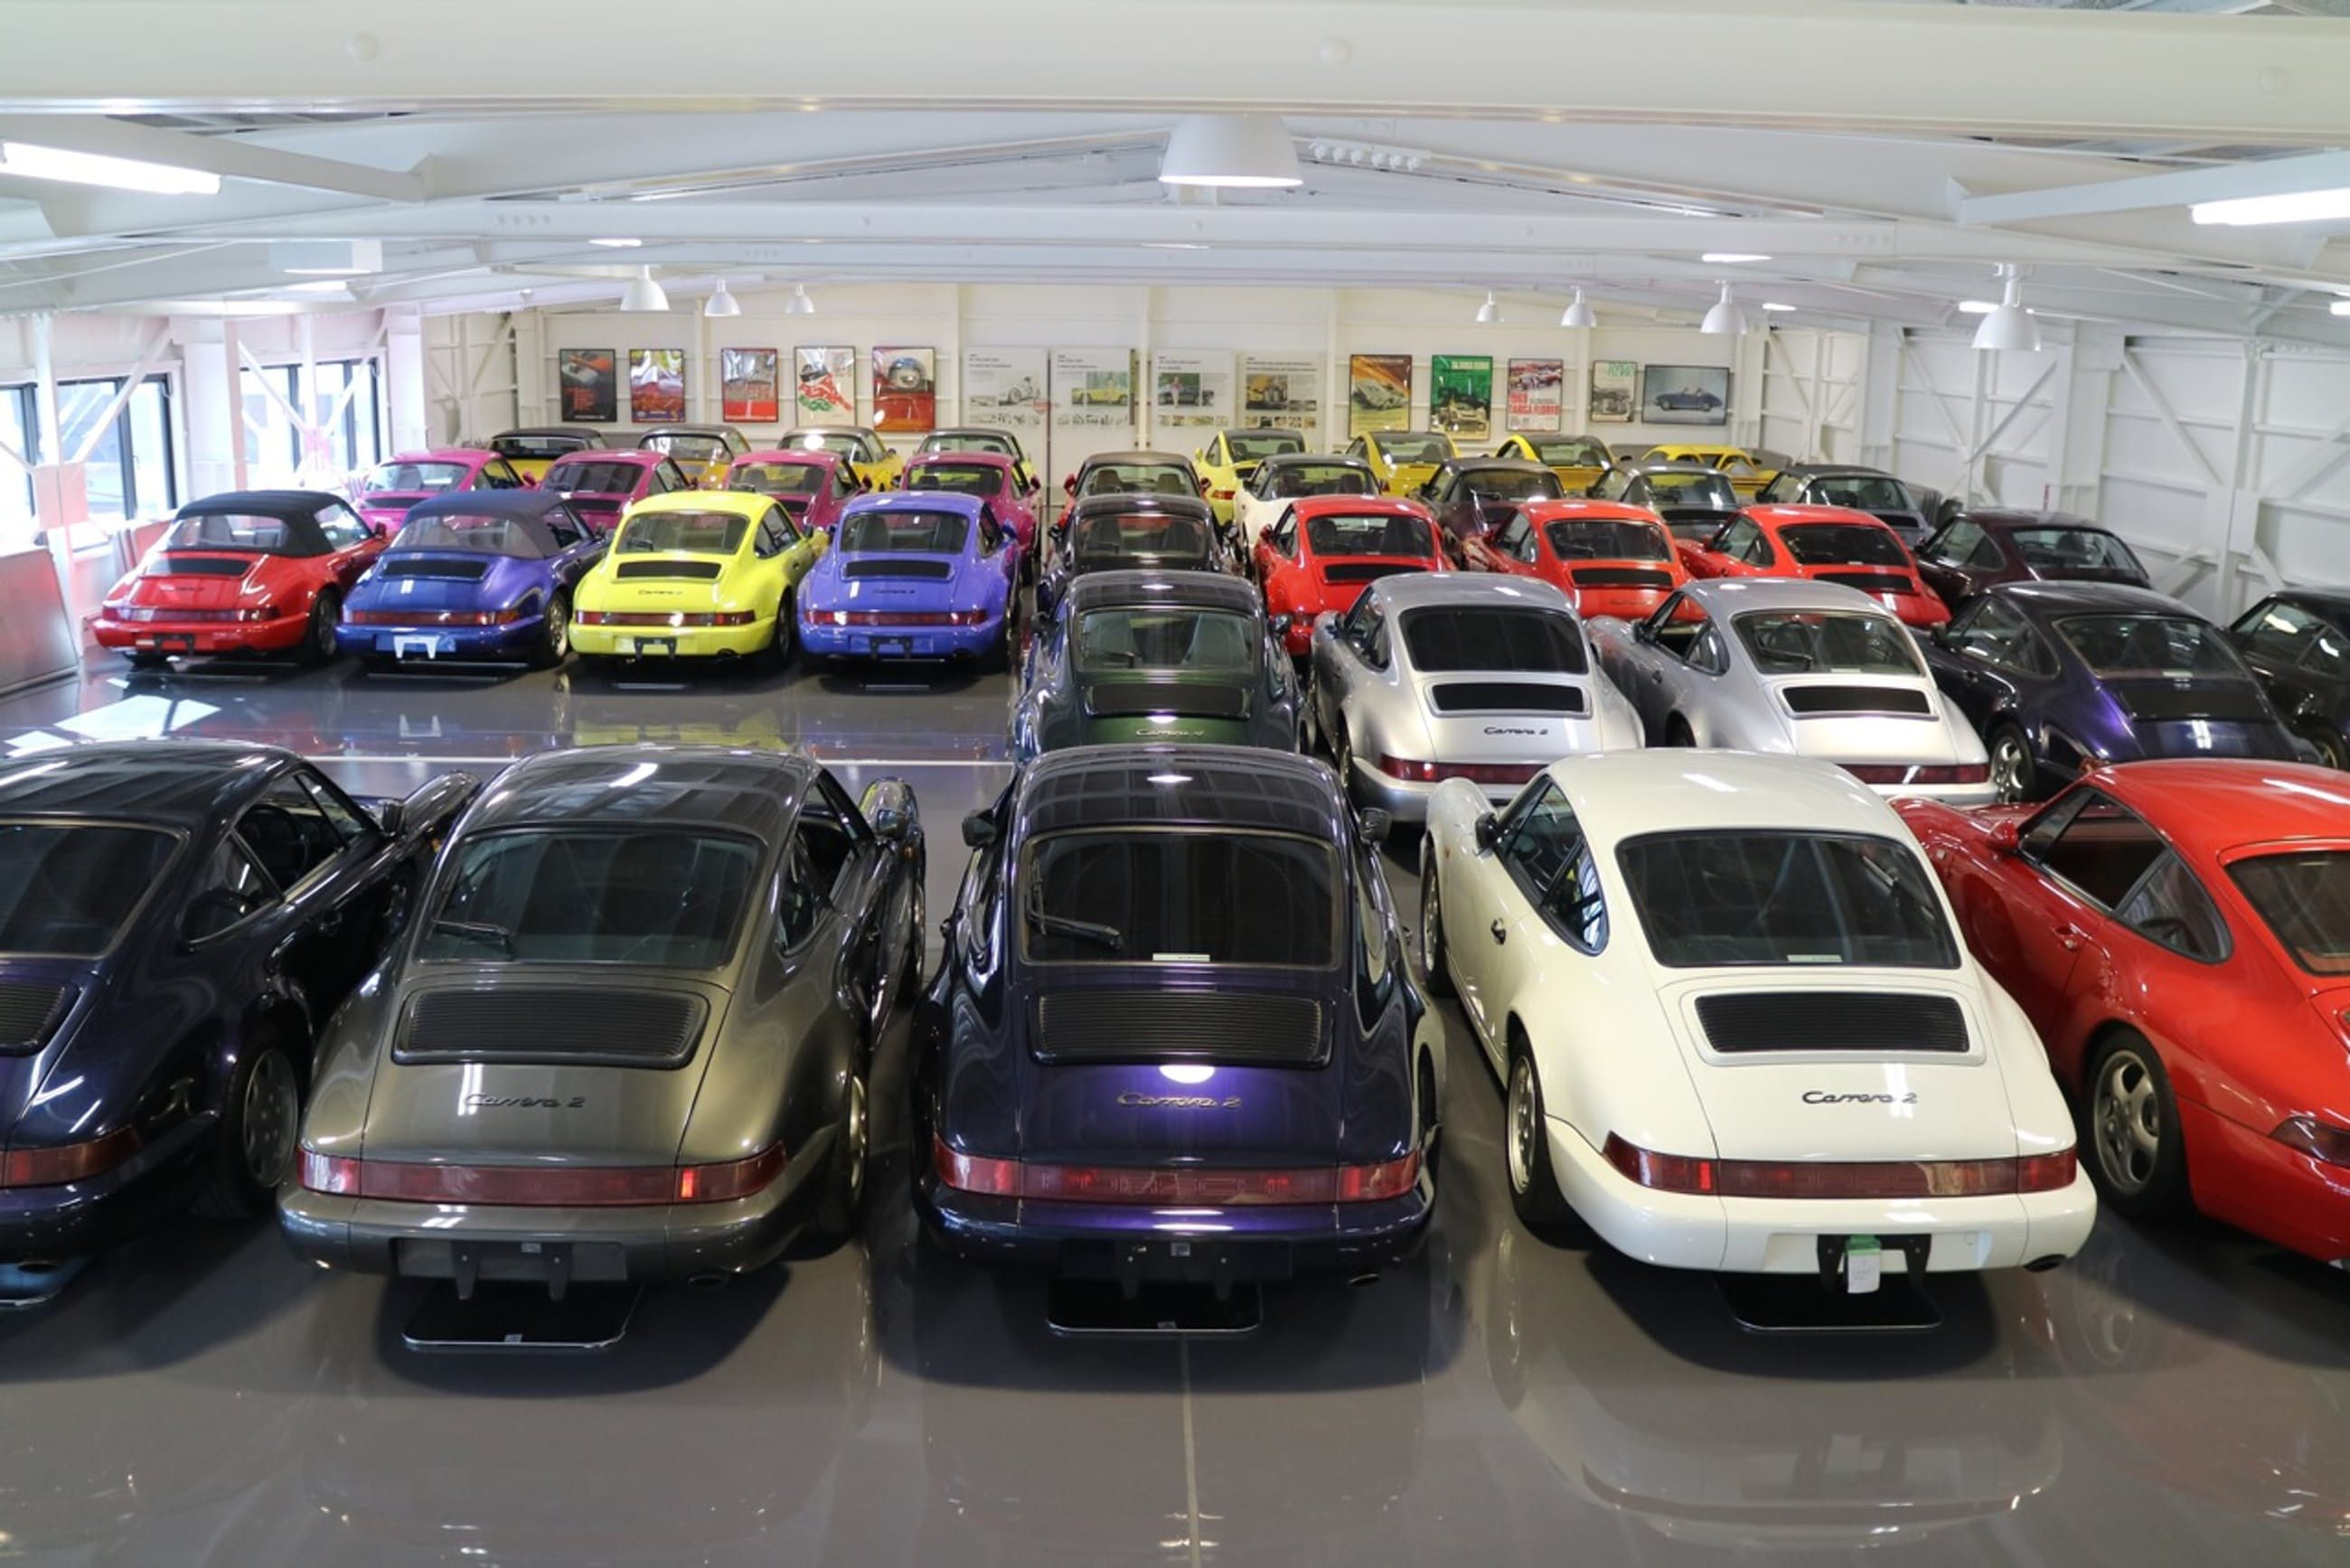 My father likes Porsches apparently...